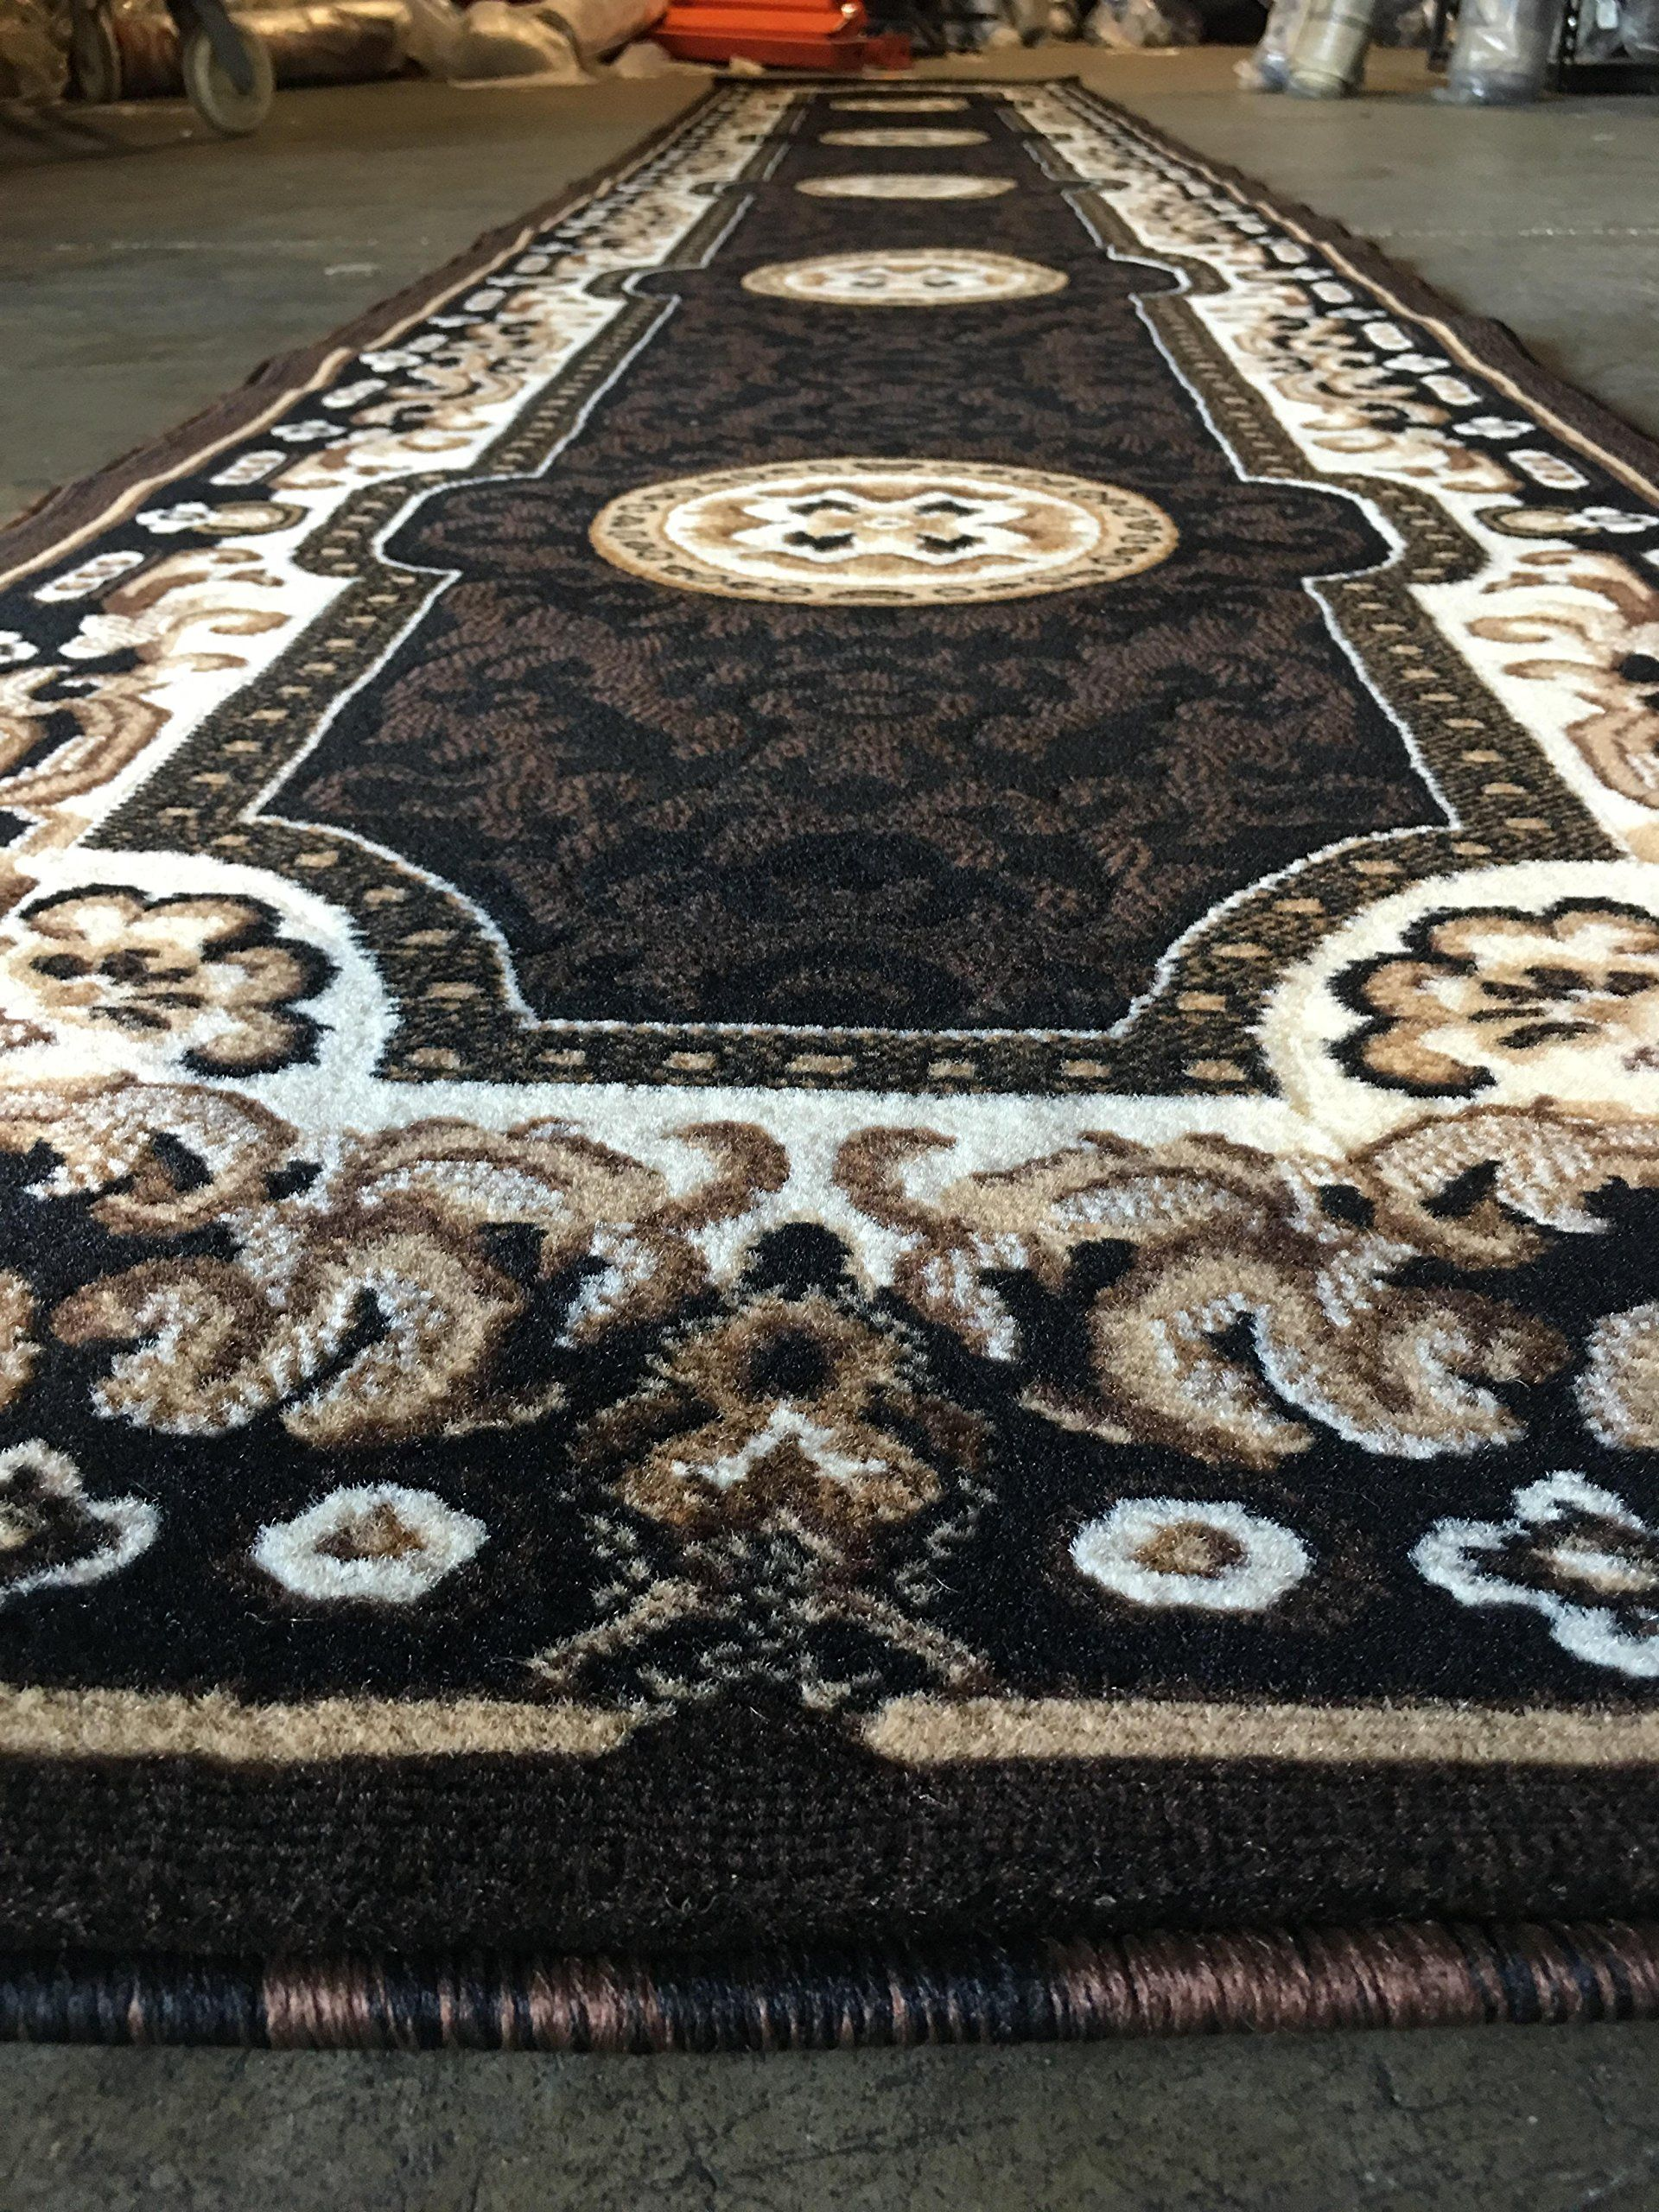 Traditional Long Runner Area Rug Kingdom Black Design D123 2 Feet 4 Inch X 10 Feet 11 Inch Read More At The Image Link This Black Design Rugs Area Rugs